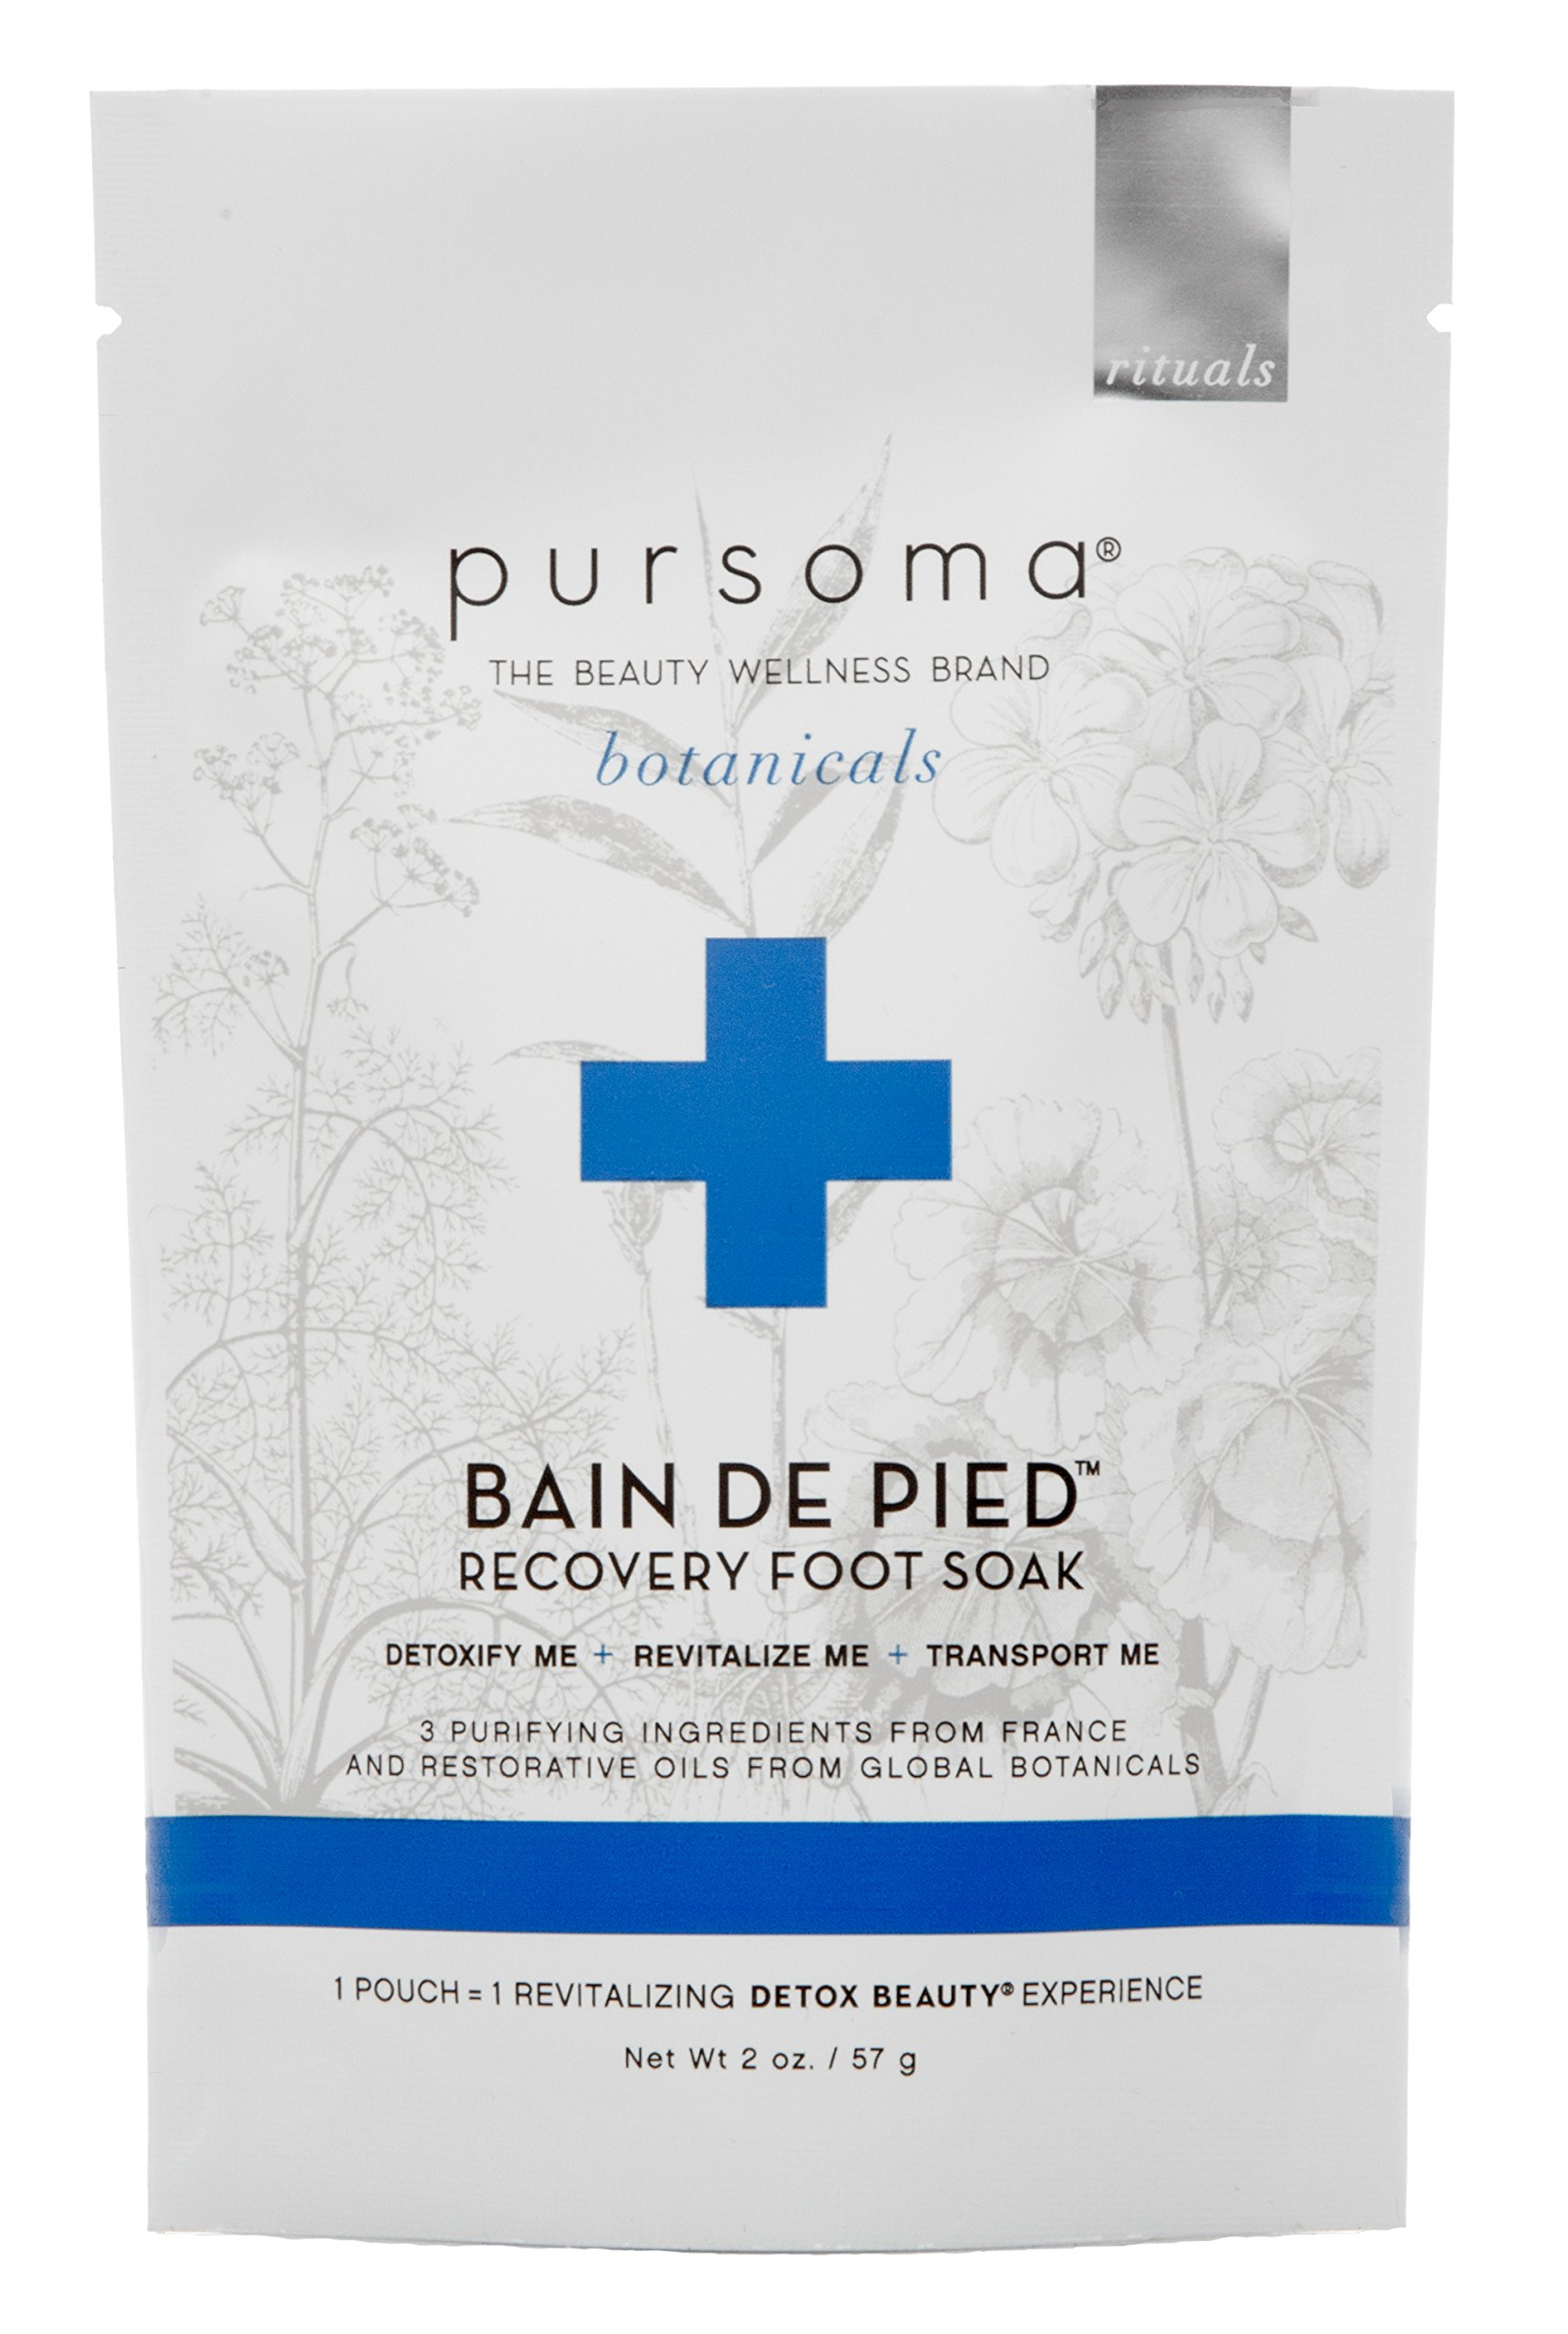 Pursoma - Wildcrafted/Vegan Bain de Pied Recovery Foot Soak (1-Day Cleanse Package)